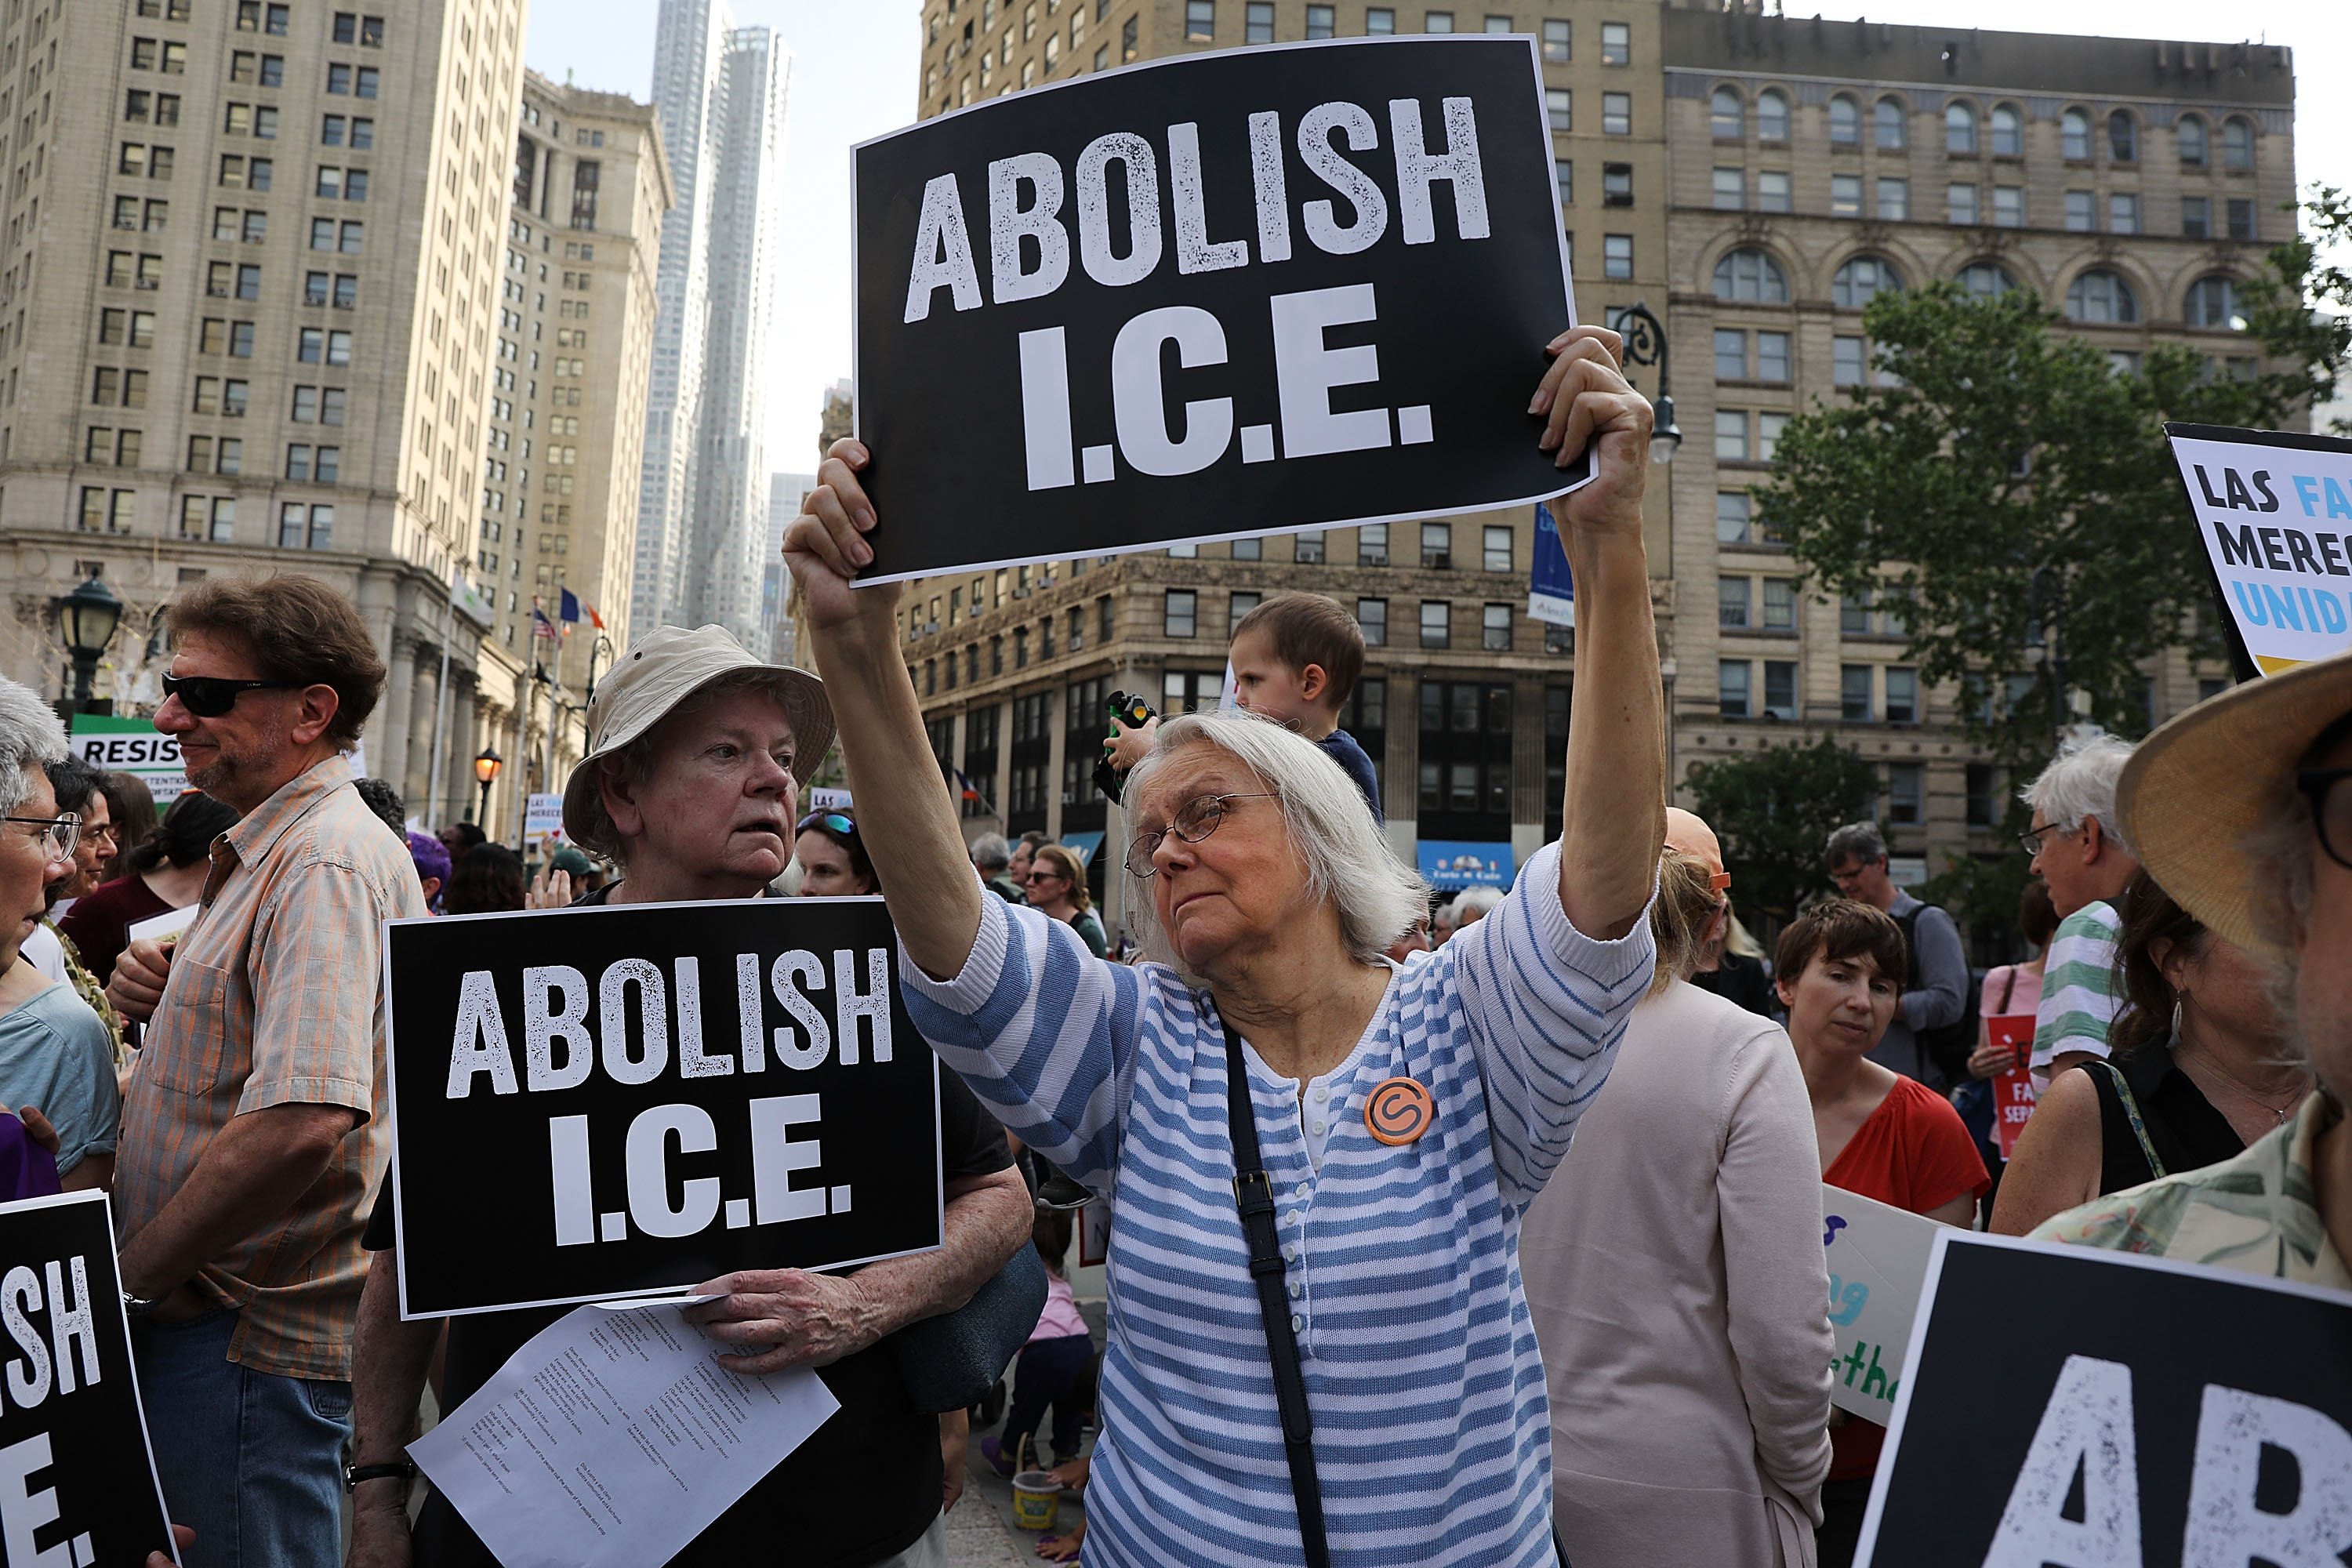 A demonstration at the Federal Building in lower Manhattan against the Trump administration's immigration policies on June 1, 2018. (Spencer Platt/Getty Images)